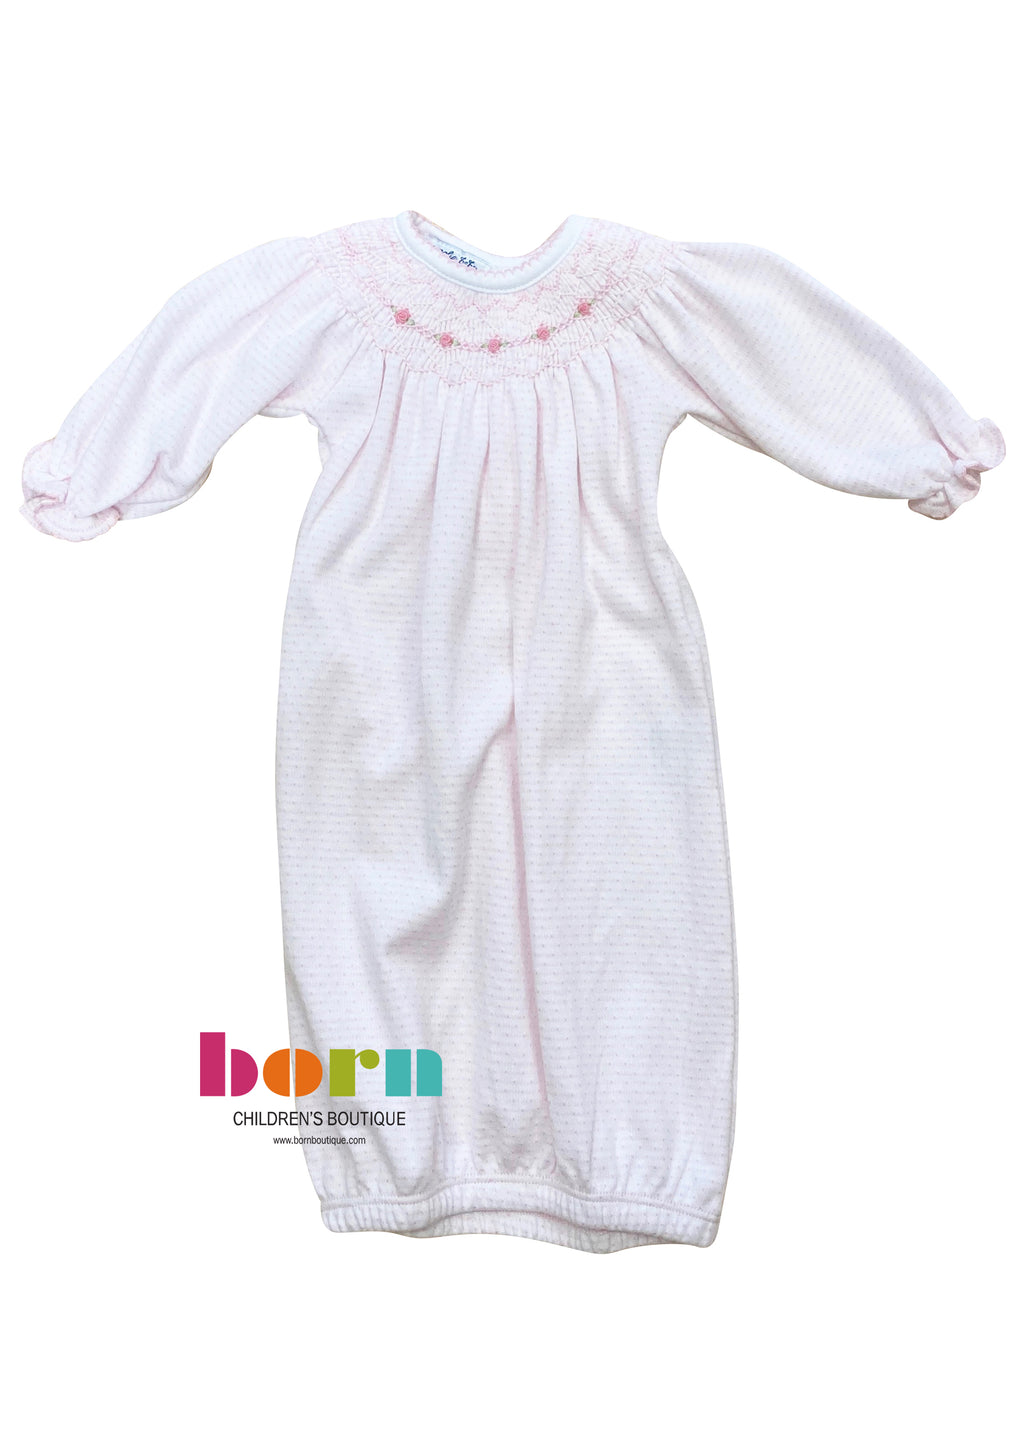 Maddy and Michael's Classics Bishop Gown Pink - Born Childrens Boutique